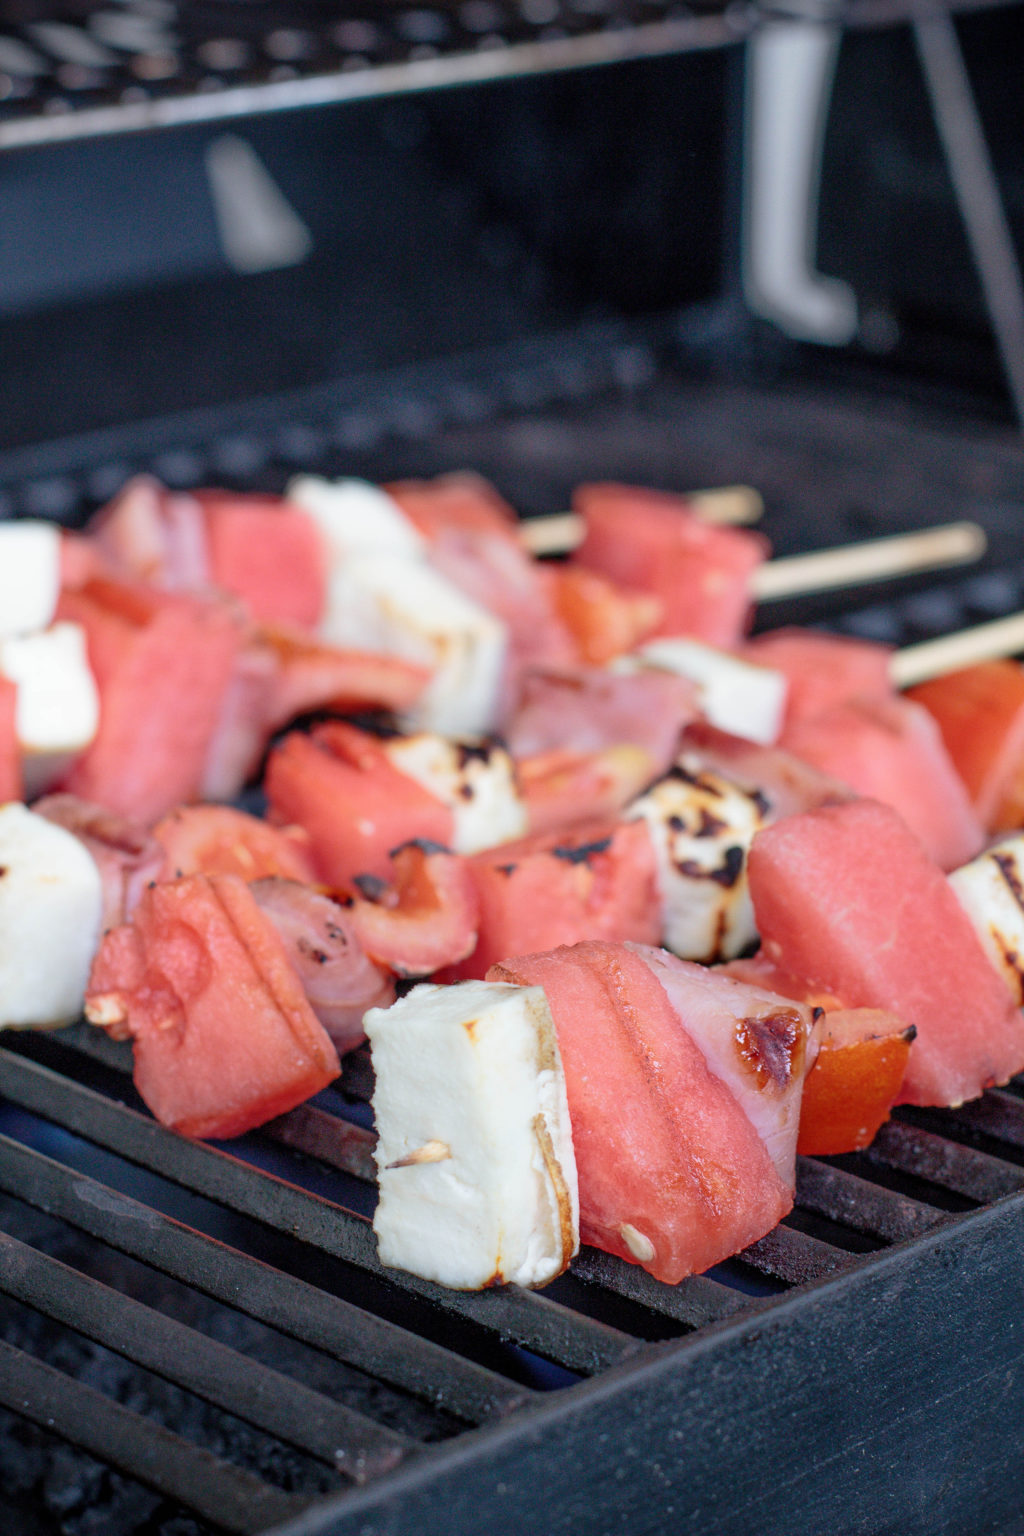 I'm always looking for summer grilling ideas that are out of the box. These watermelon, ham, and cheese kabobs fit the bill completely!